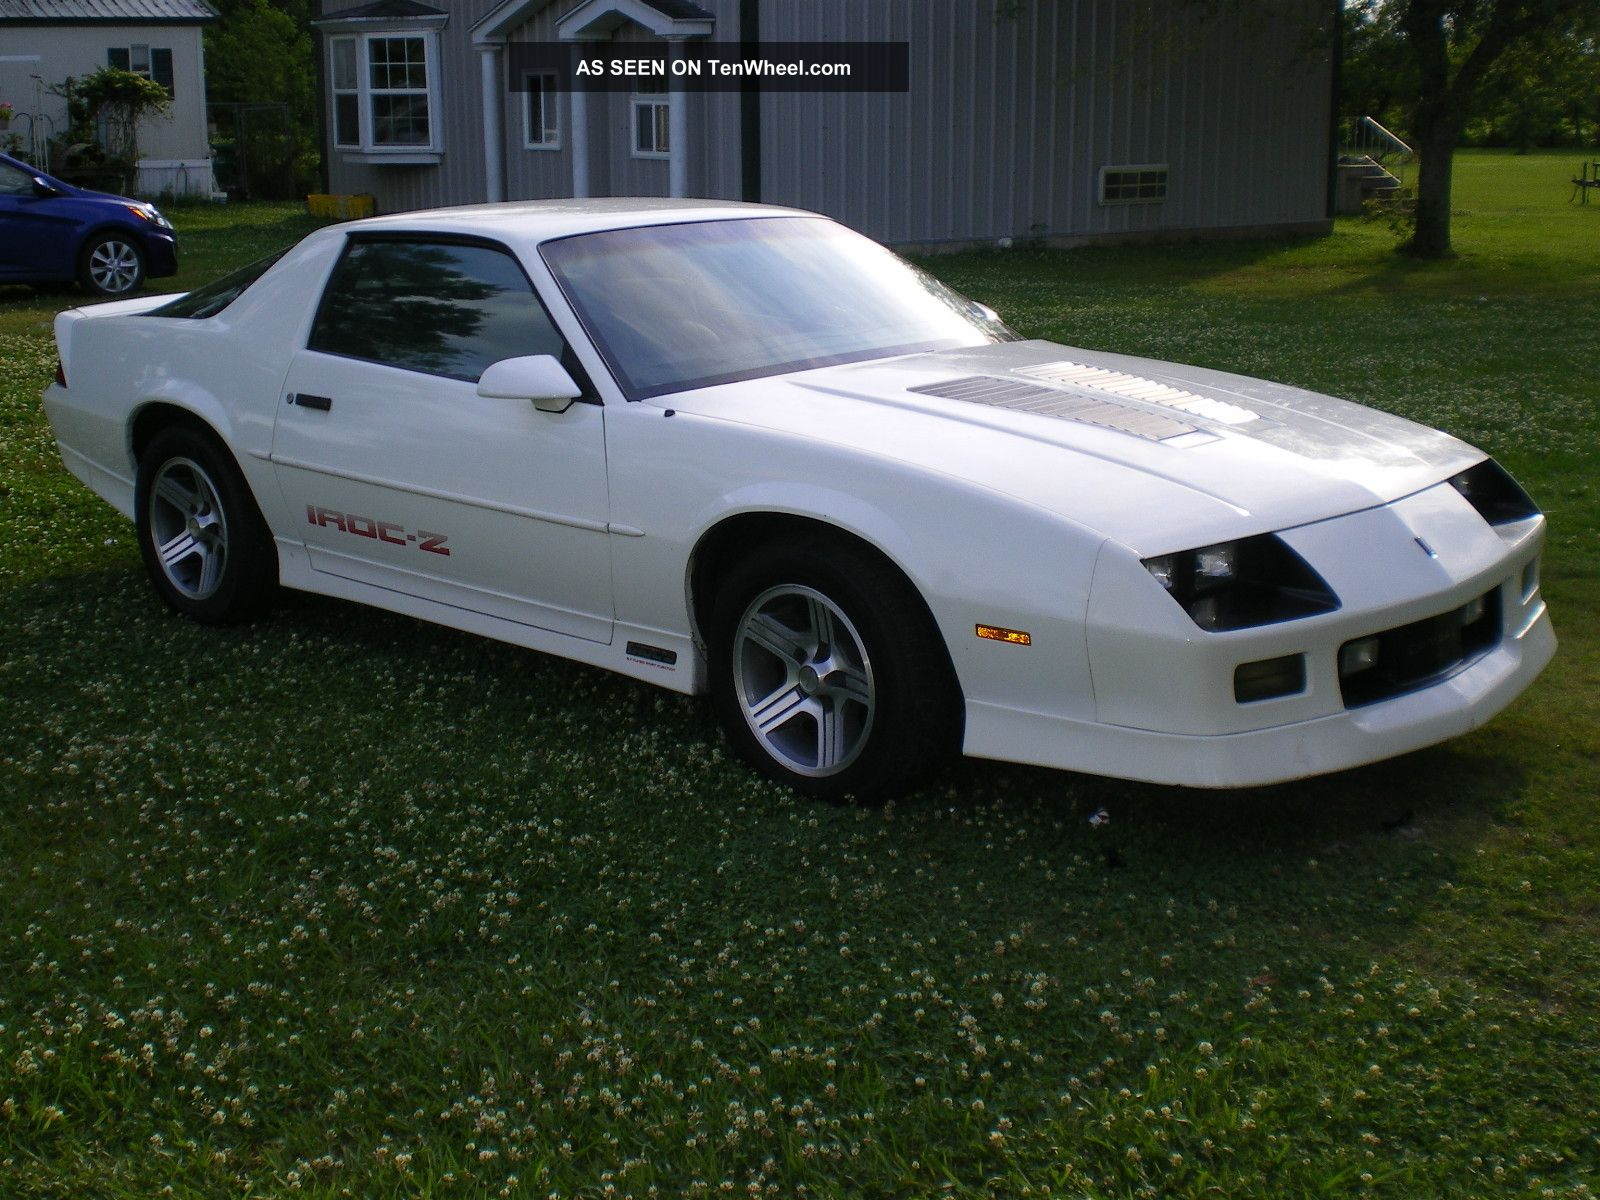 98 Camaro Ss Specs 50 Images Car Engineer Chevy Wiring Diagram 1988 Iroc 350 Tpi Irock Z28 5 7l L98 With G92 Option